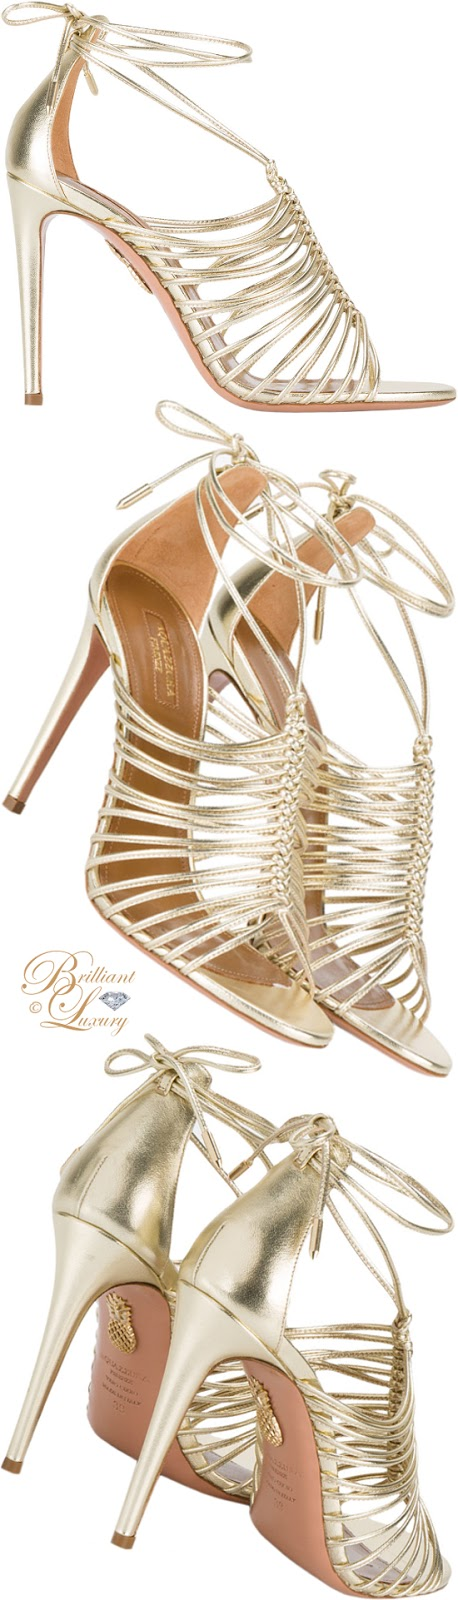 Brilliant Luxury ♦ Aquazzura Nadja gold leather sandals